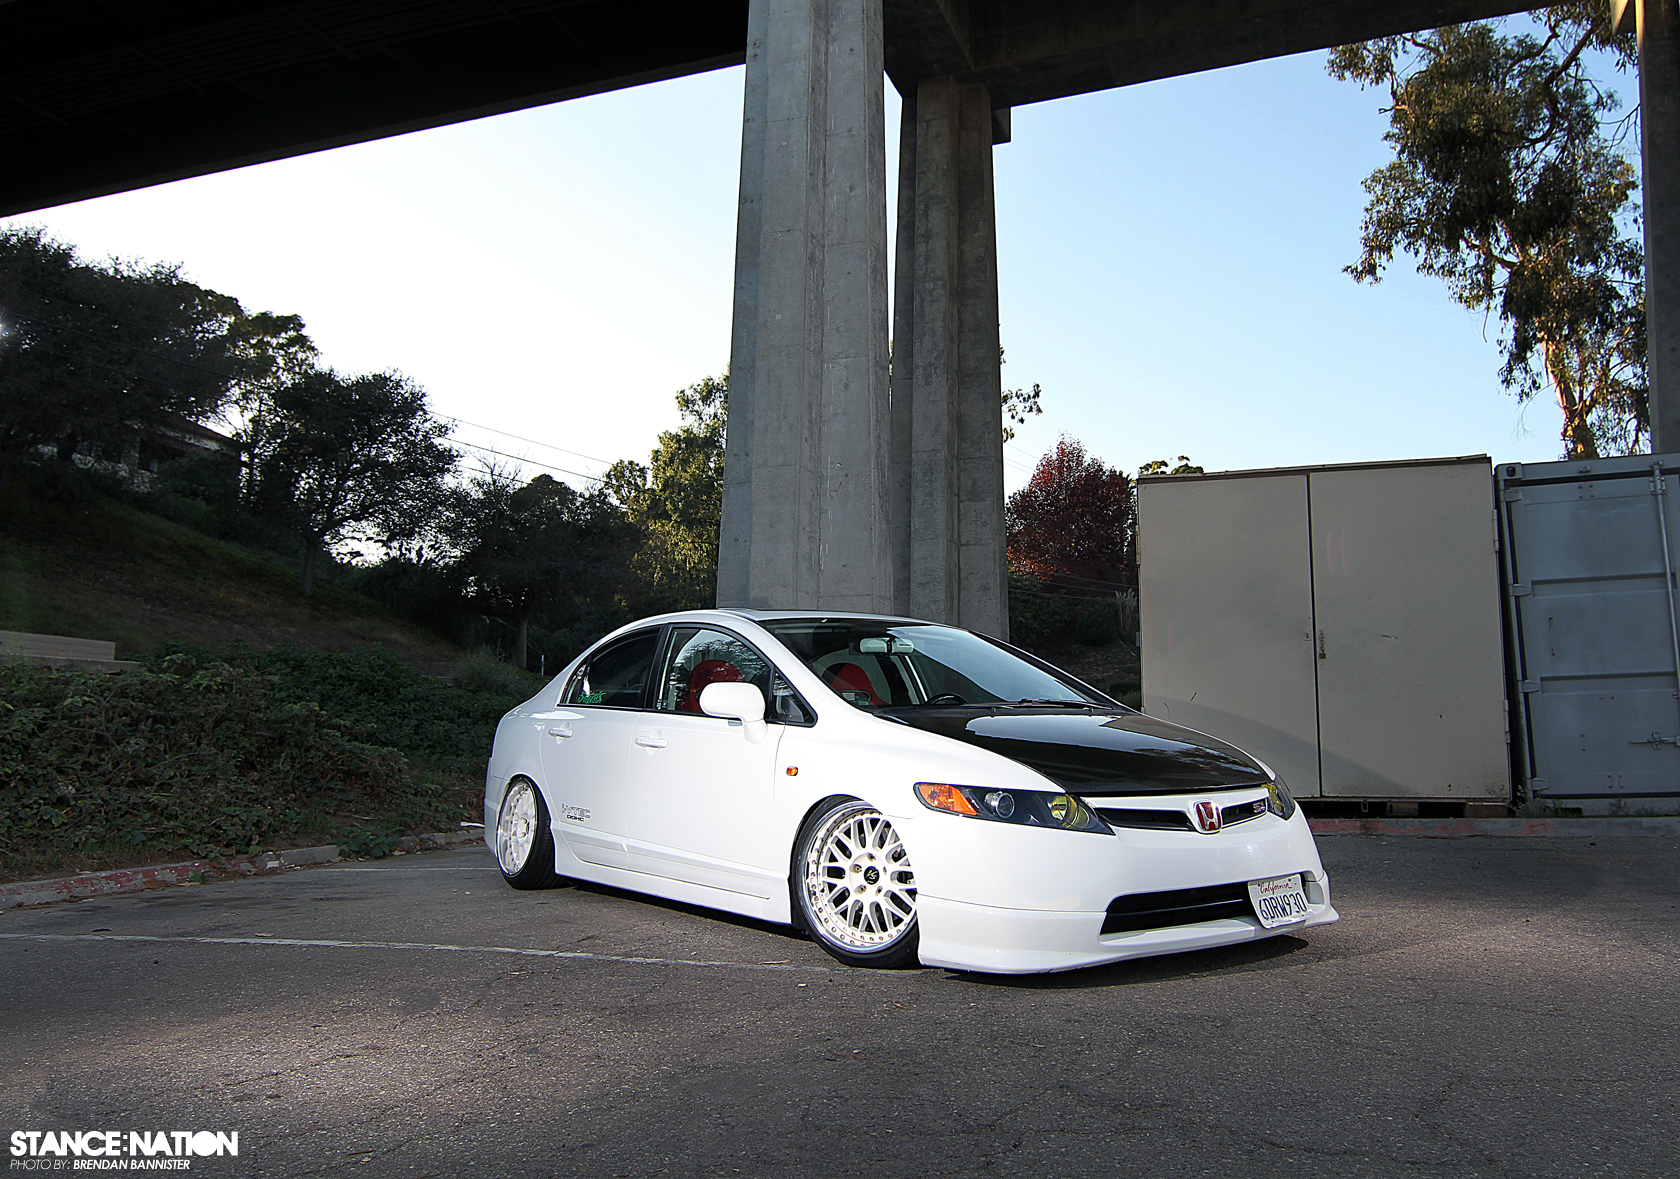 Best Honda Integra Type R Wallpaper X For Desktop together with H W Di also Morgan X Th Anniversary Geneva Auto Show Interior in addition Honda Civic X moreover Rally X Winter Snow K. on 2560x1440 civic